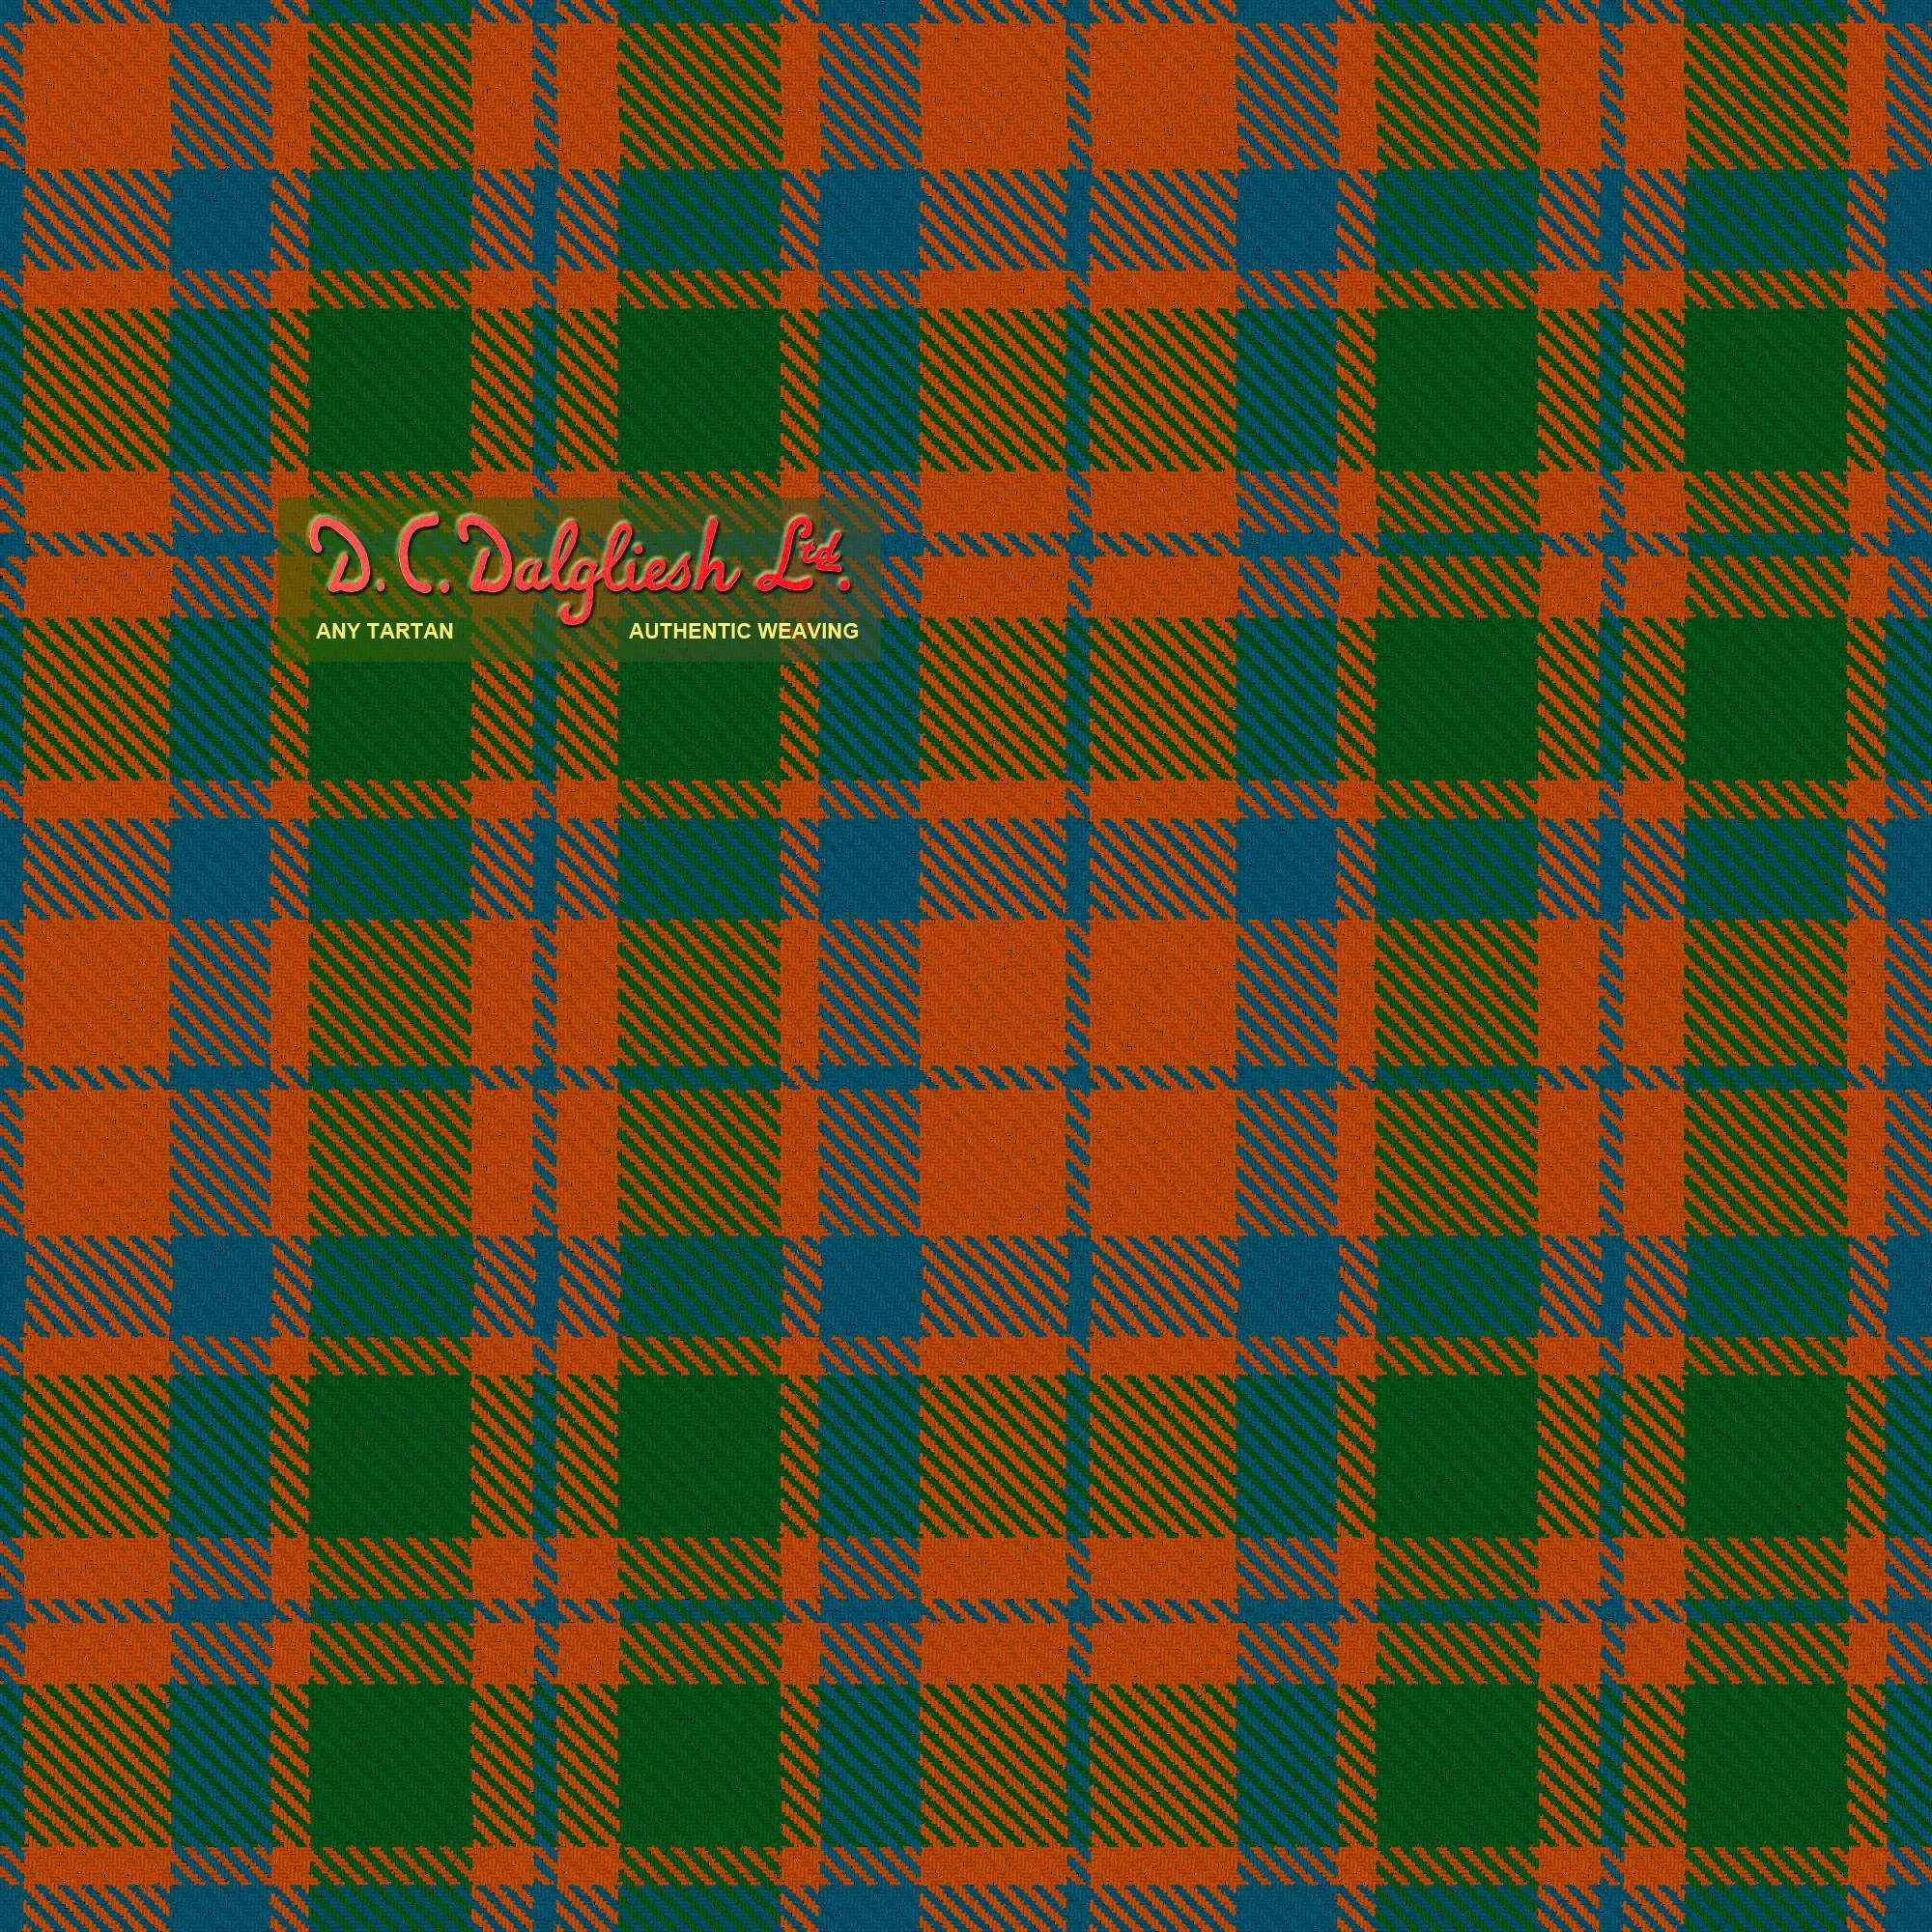 Macbean Of Tomatin Fabric By Dc Dalgliesh Hand Crafted